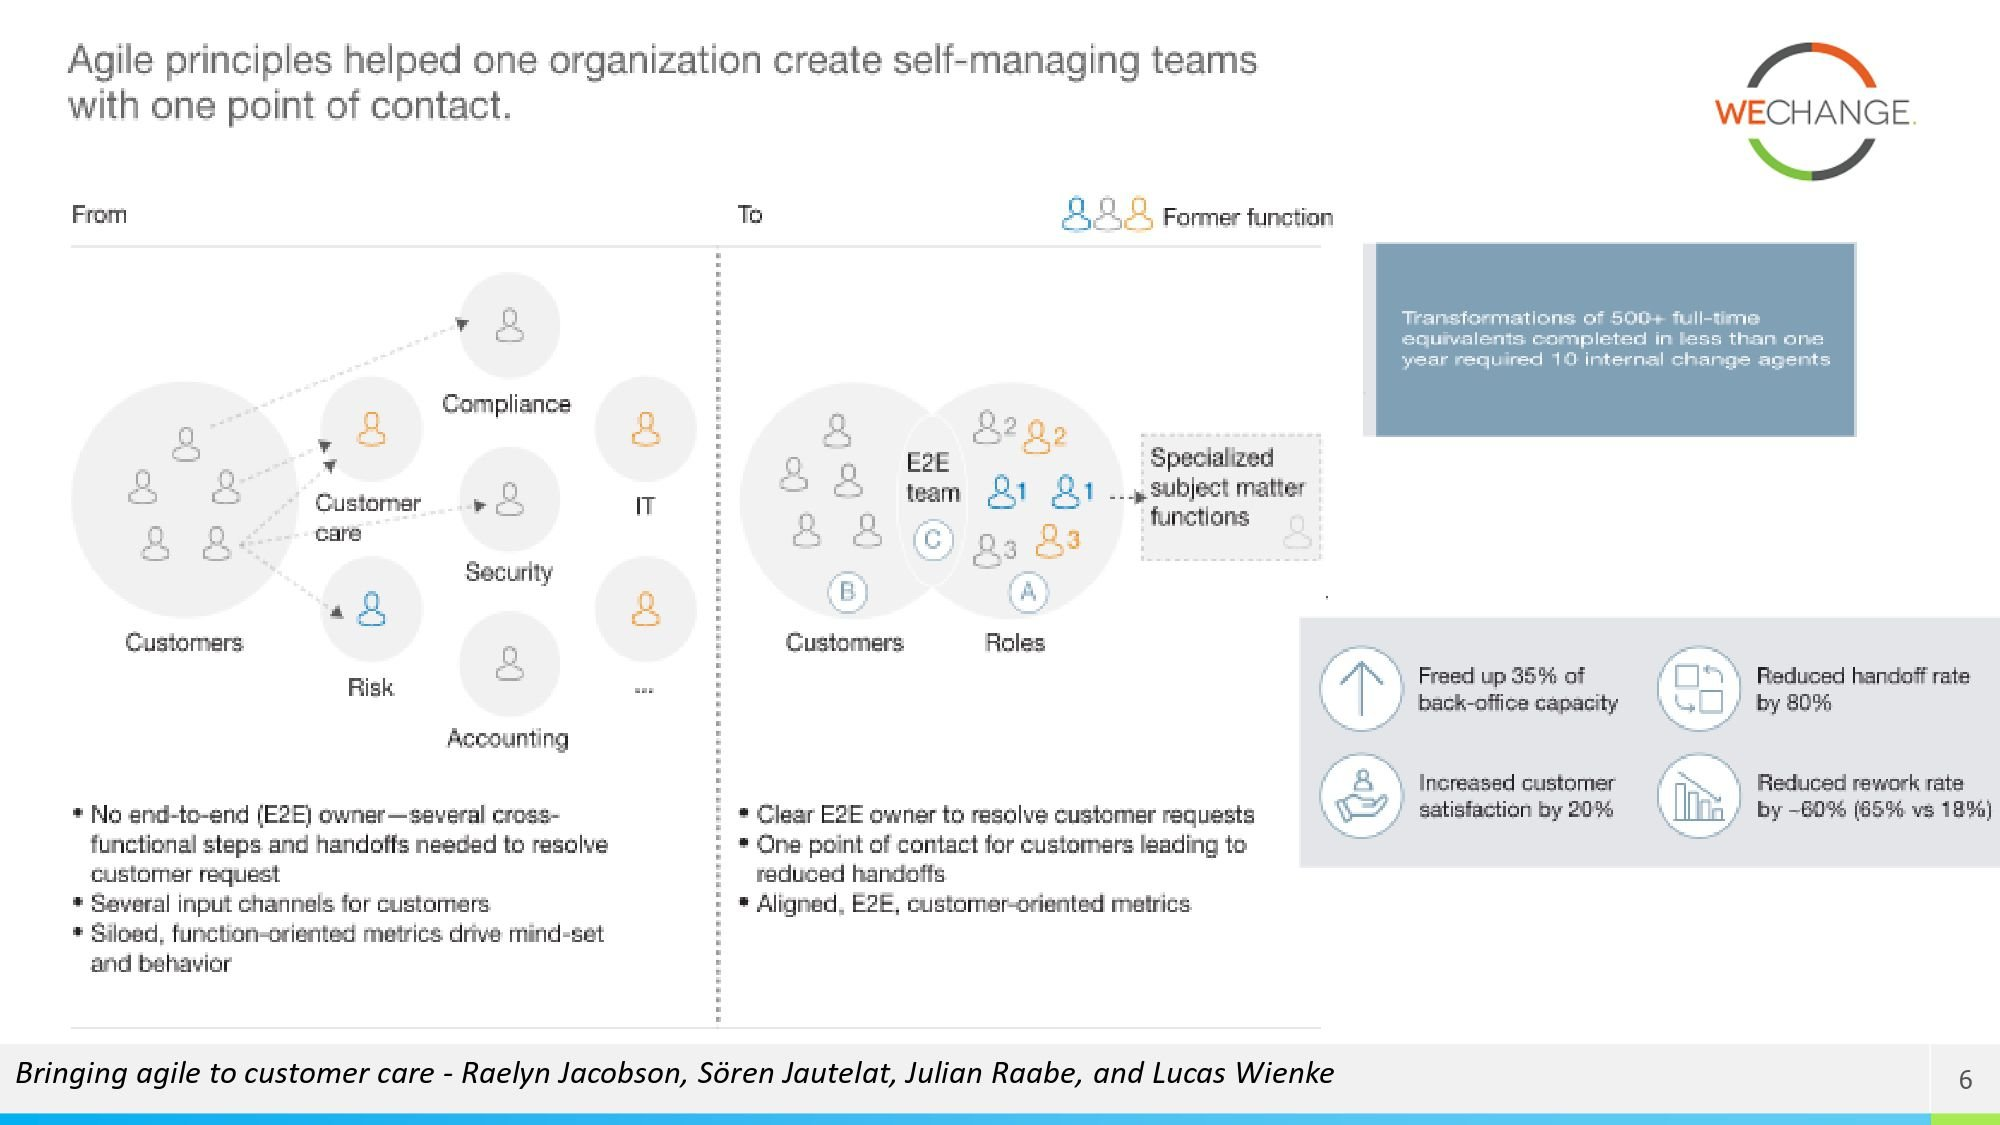 Operations agility page 0008 compressed Being & Doing Agile in Customer oriented care and Operations Organizations